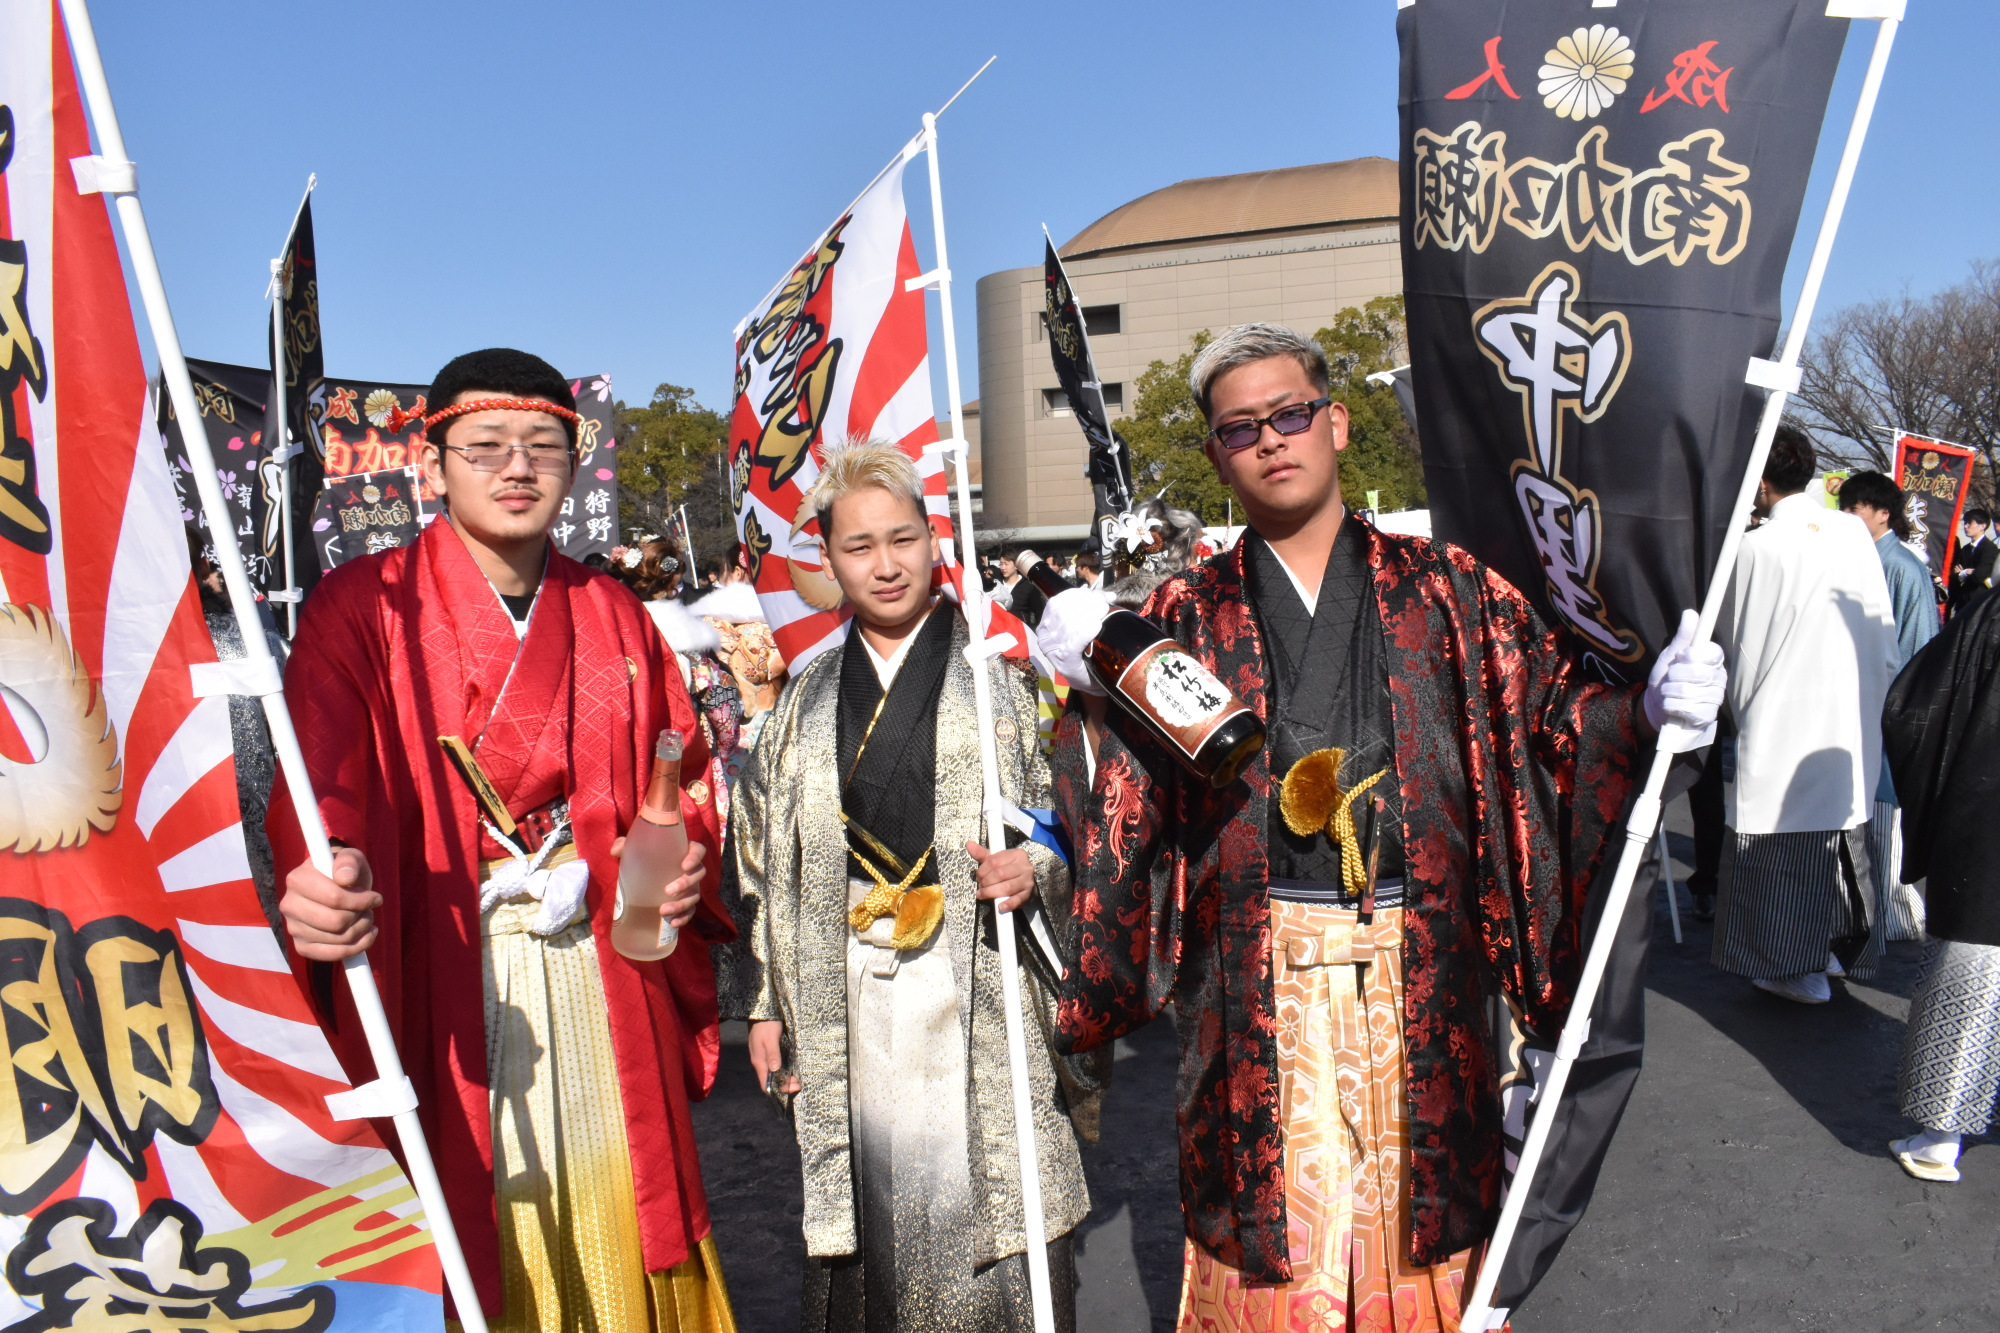 Three men wearing traditional hakama pants stand out at a coming-of-age ceremony in Kawasaki on Monday. Most men attending the event dressed in suits while women wore kimono to celebrate attaining adulthood. | TOMOHIRO OSAKI